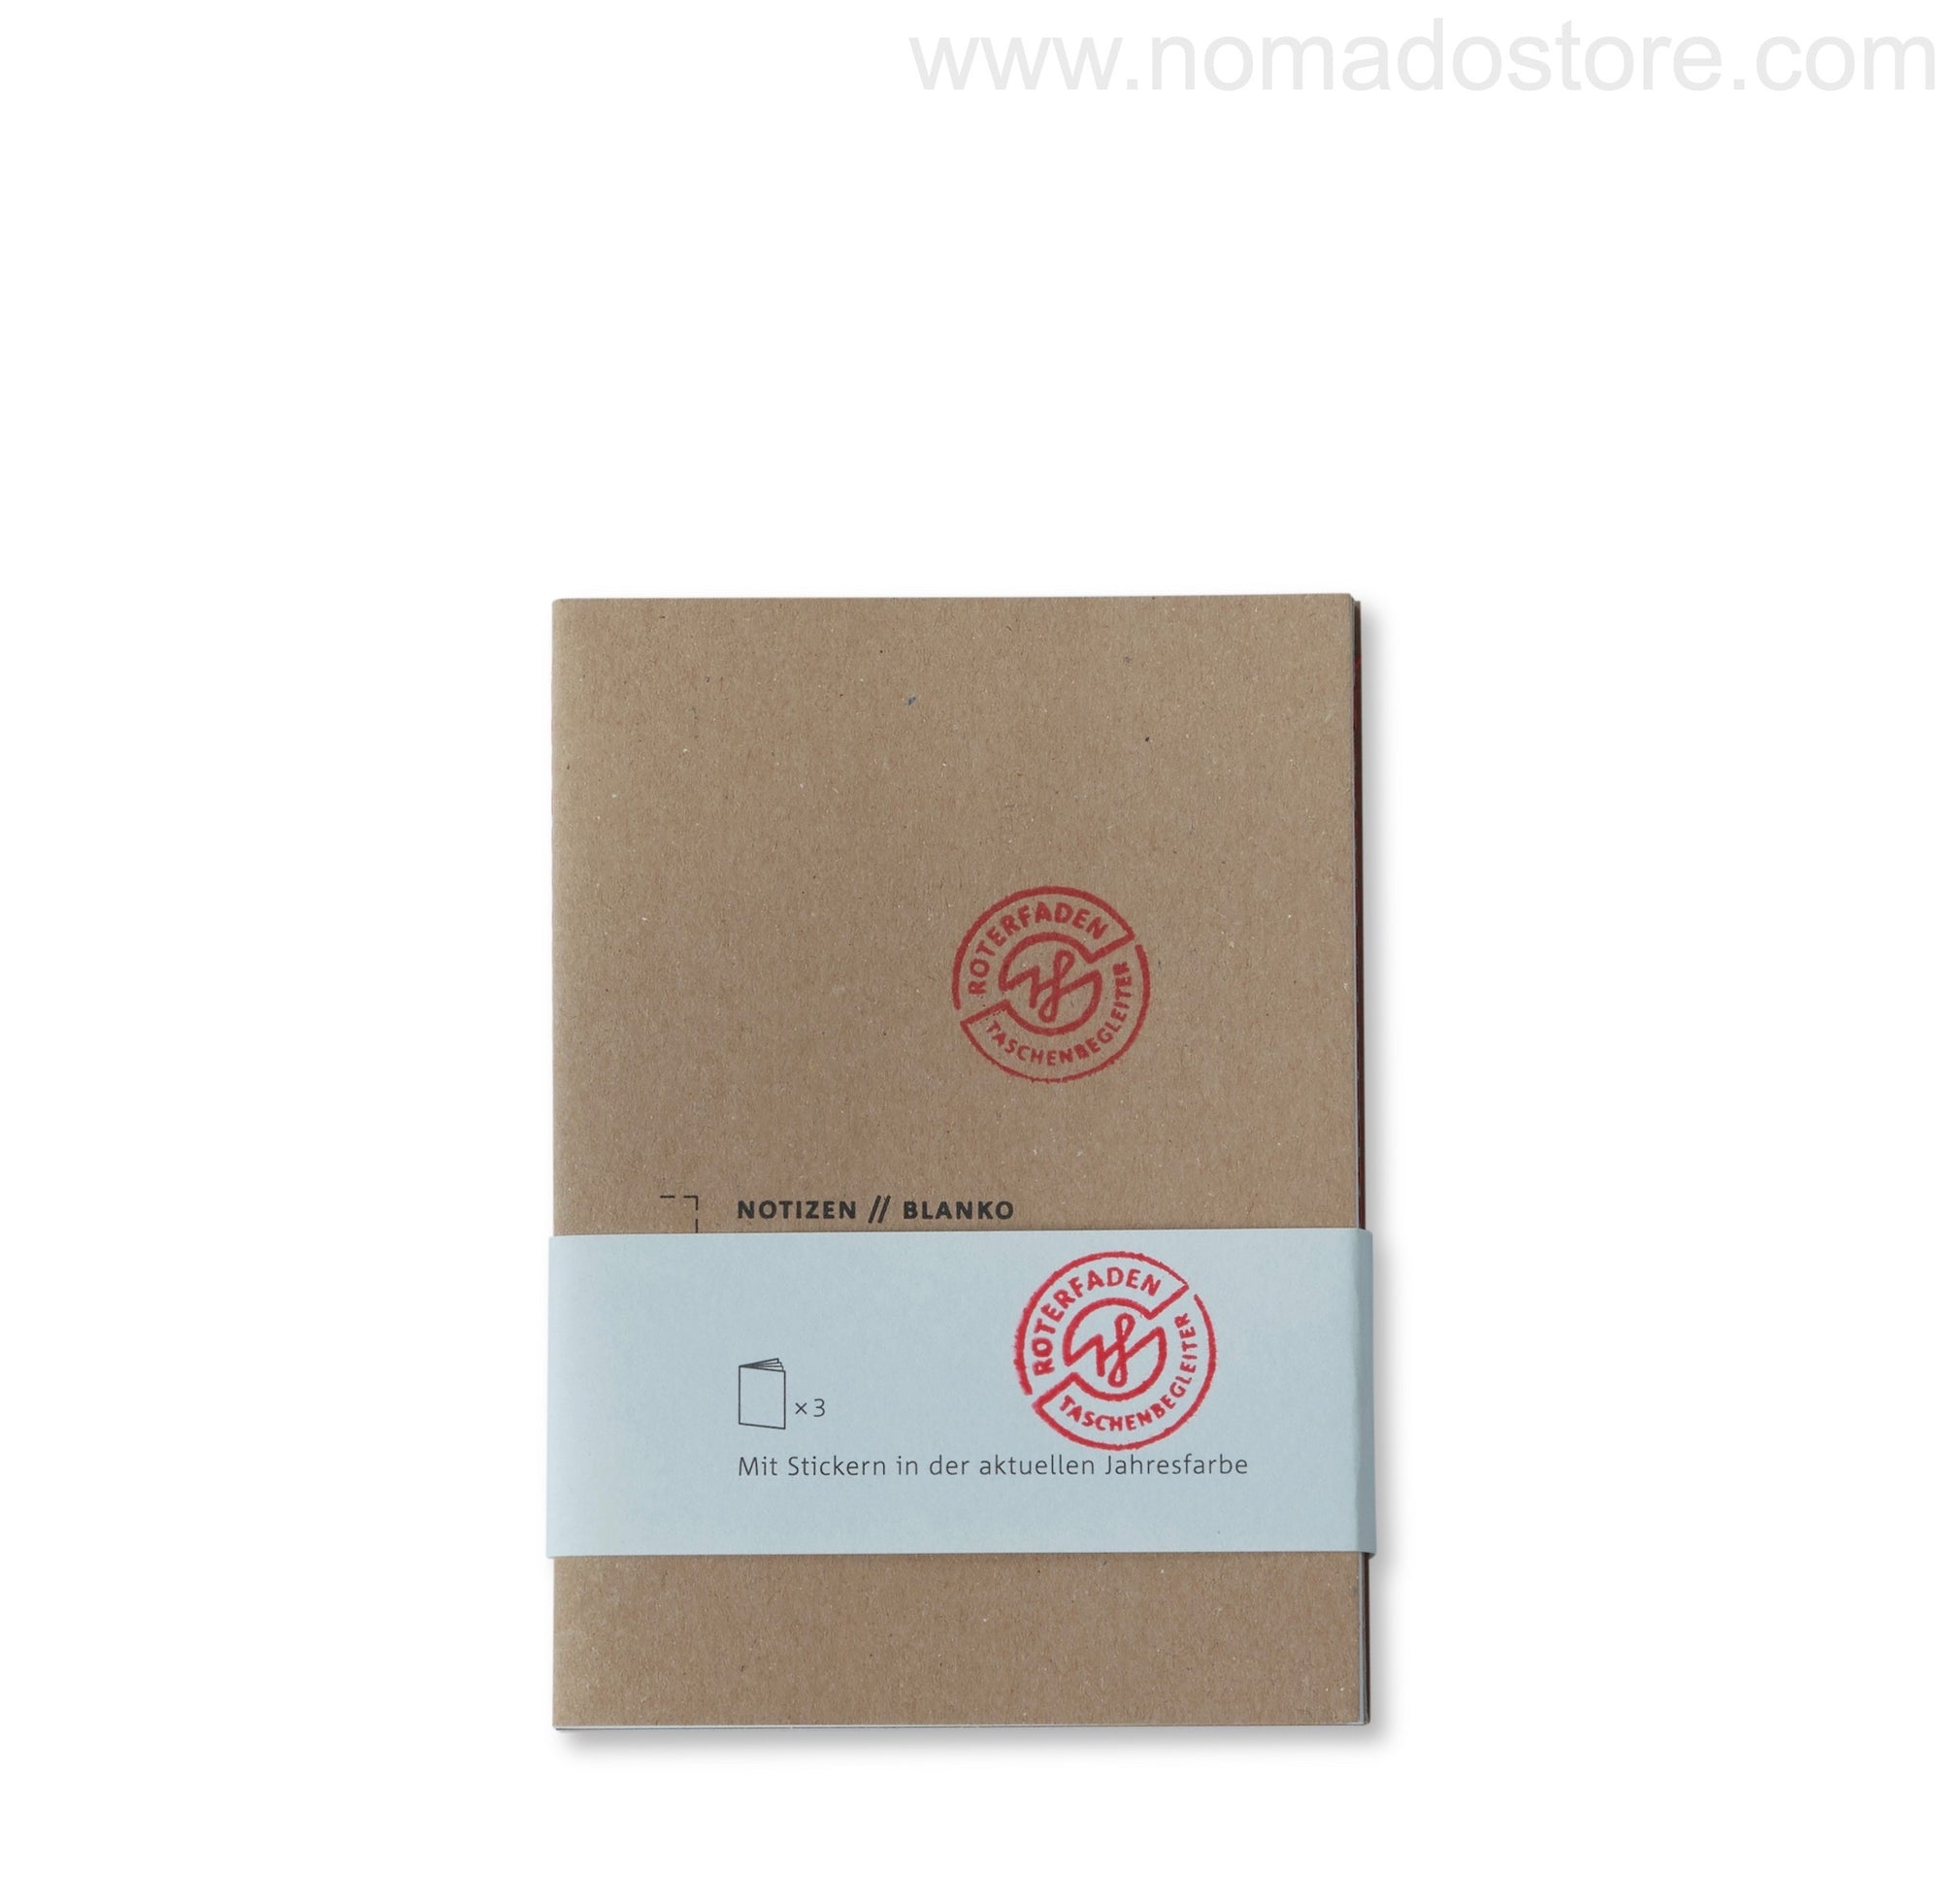 Roterfaden Smaller A6 Note Booklets -3-pack/blank (10x14cm)